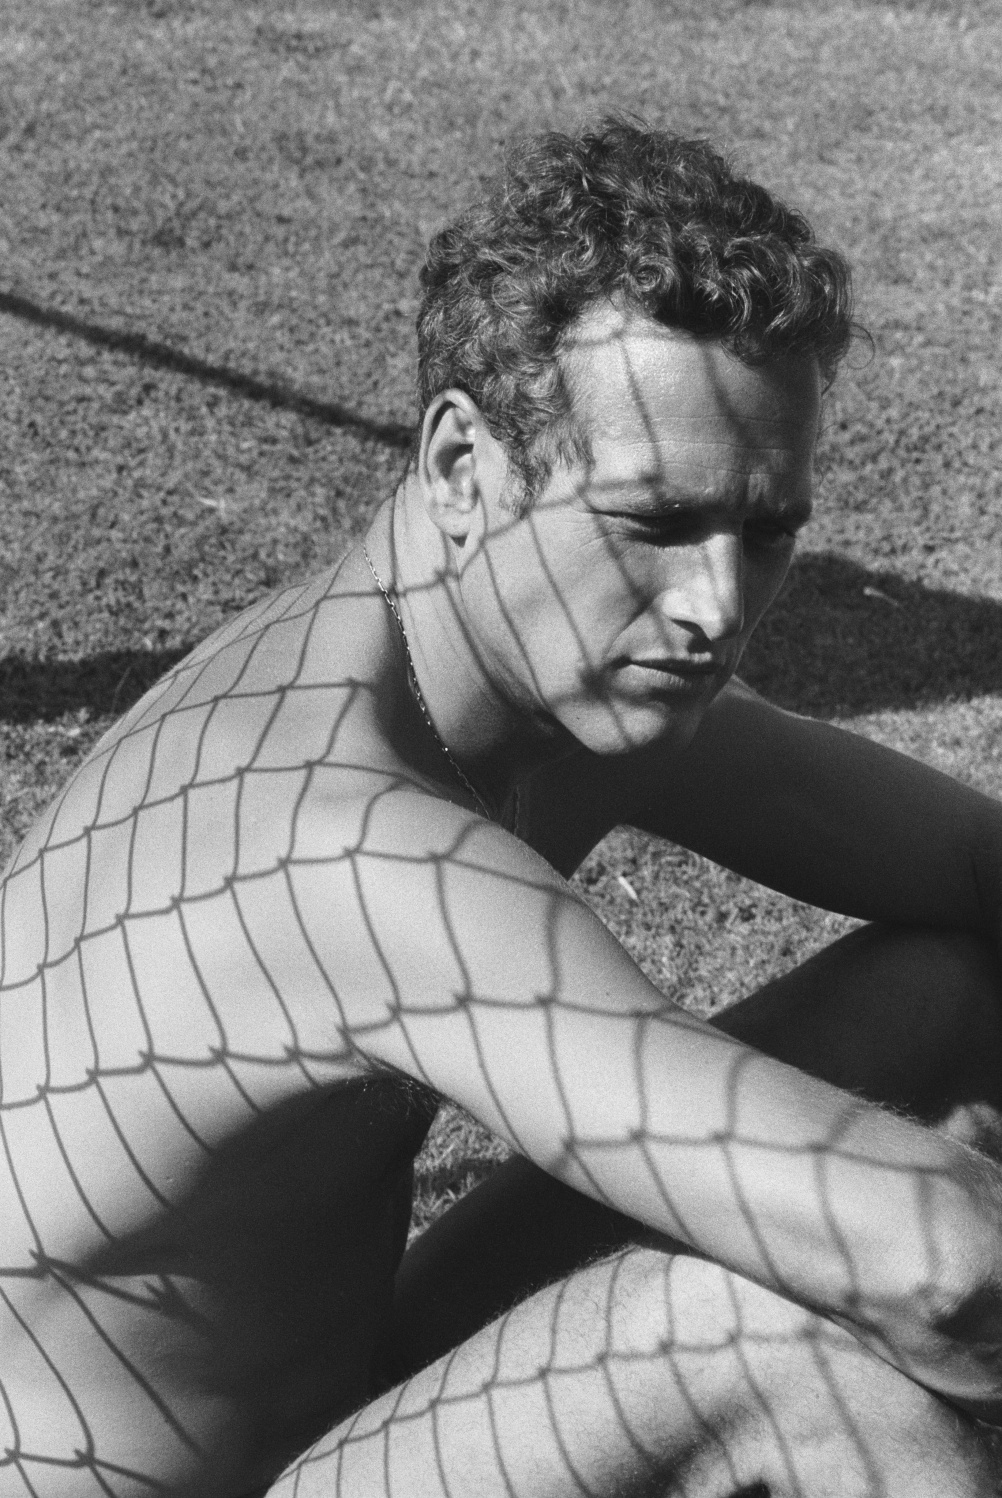 Dennis Hopper Paul Newman, 1964 Photograph, 16.64 x 25.02 cm The Hopper Art Trust